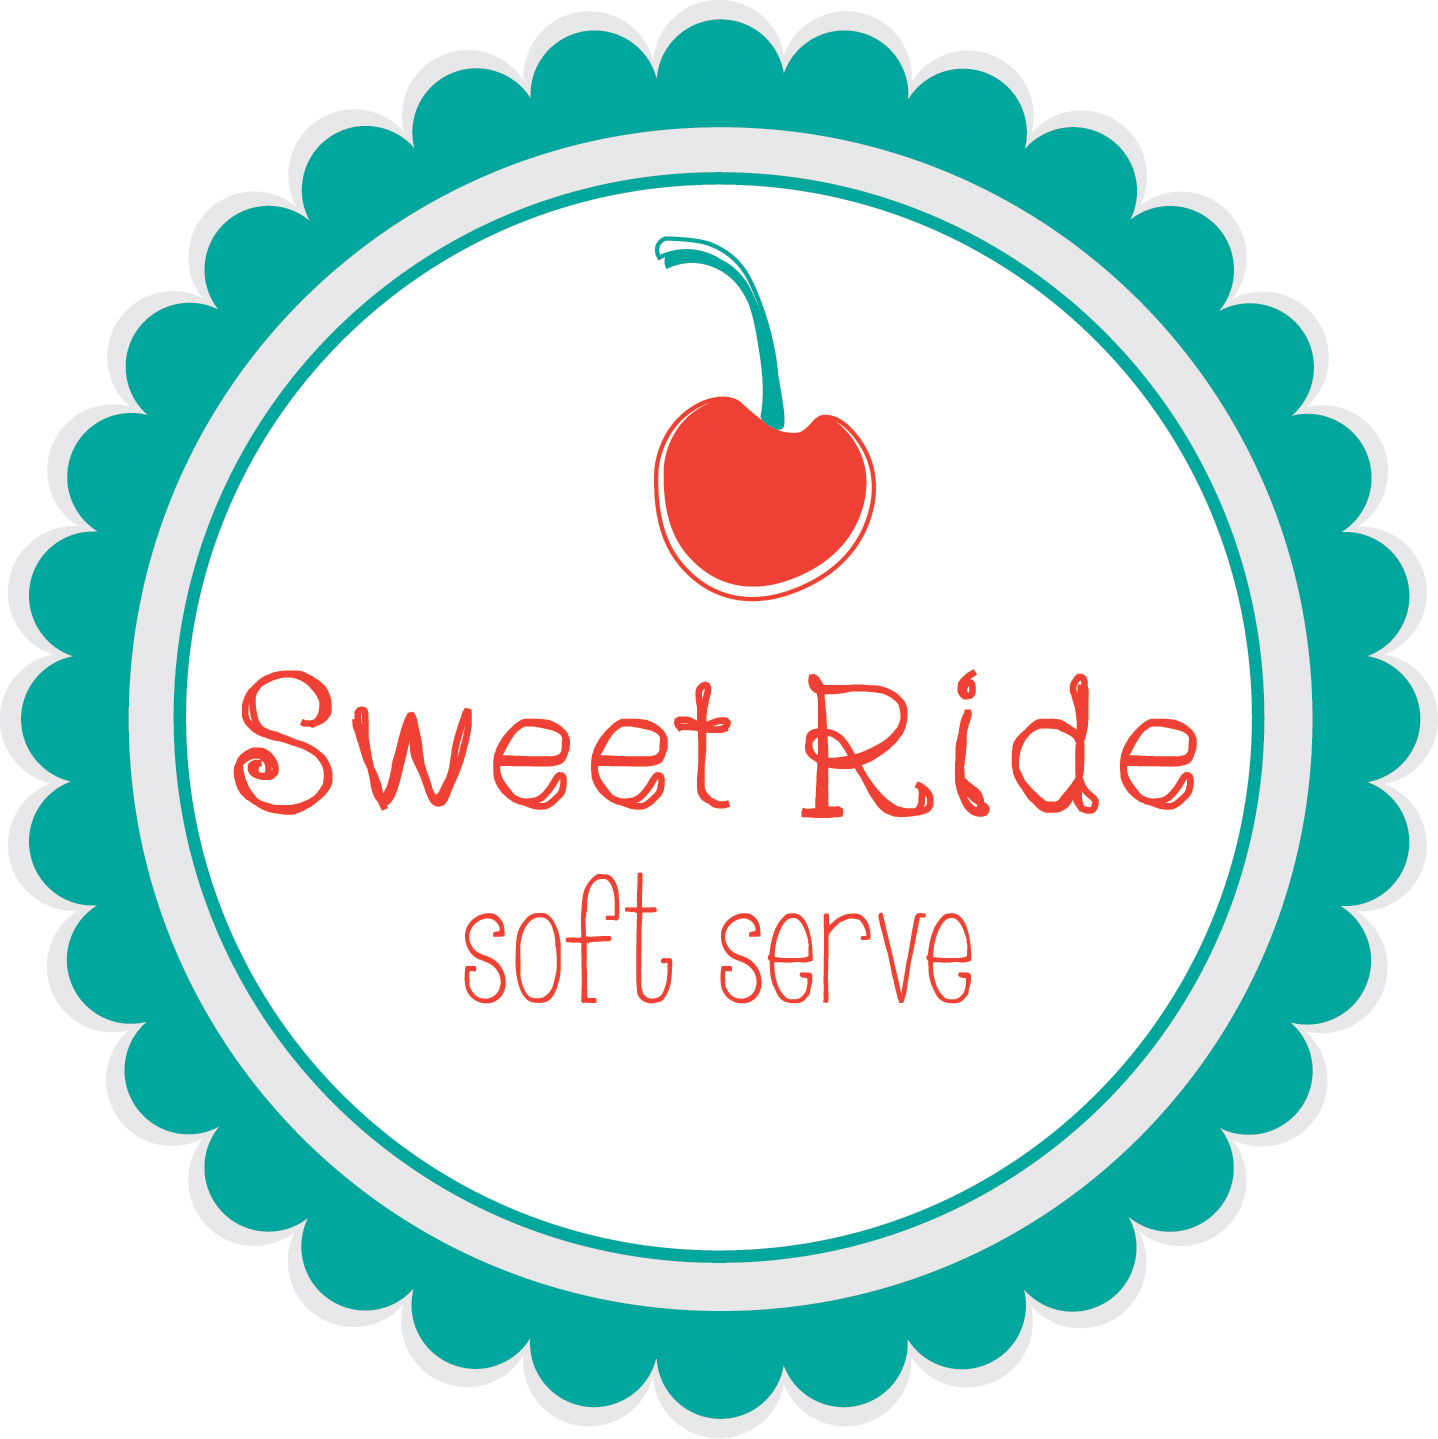 Sweet Ride Soft Serve